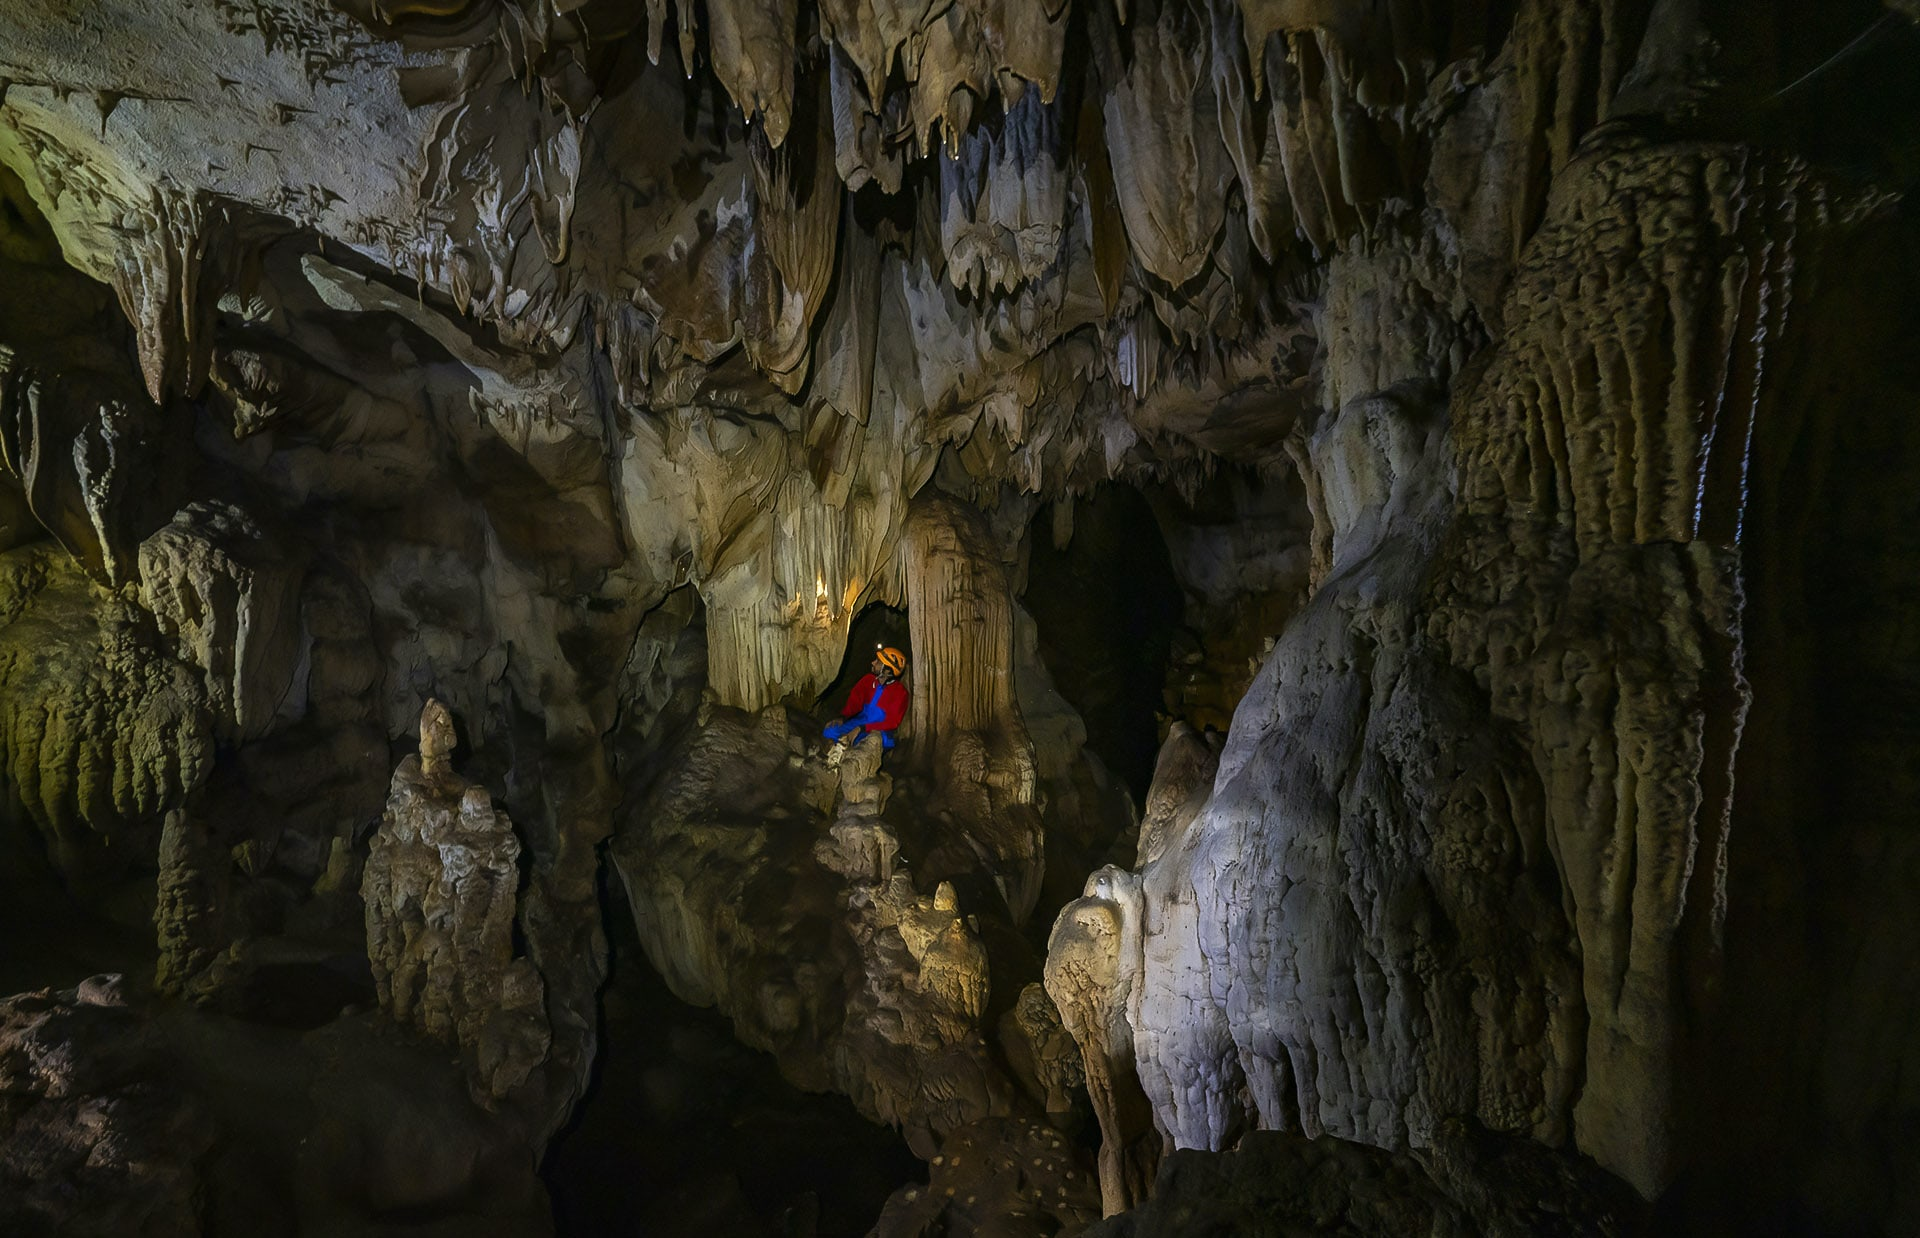 meghalaya-caves-formation-man-in-cave-flowstone-on-right-foreground